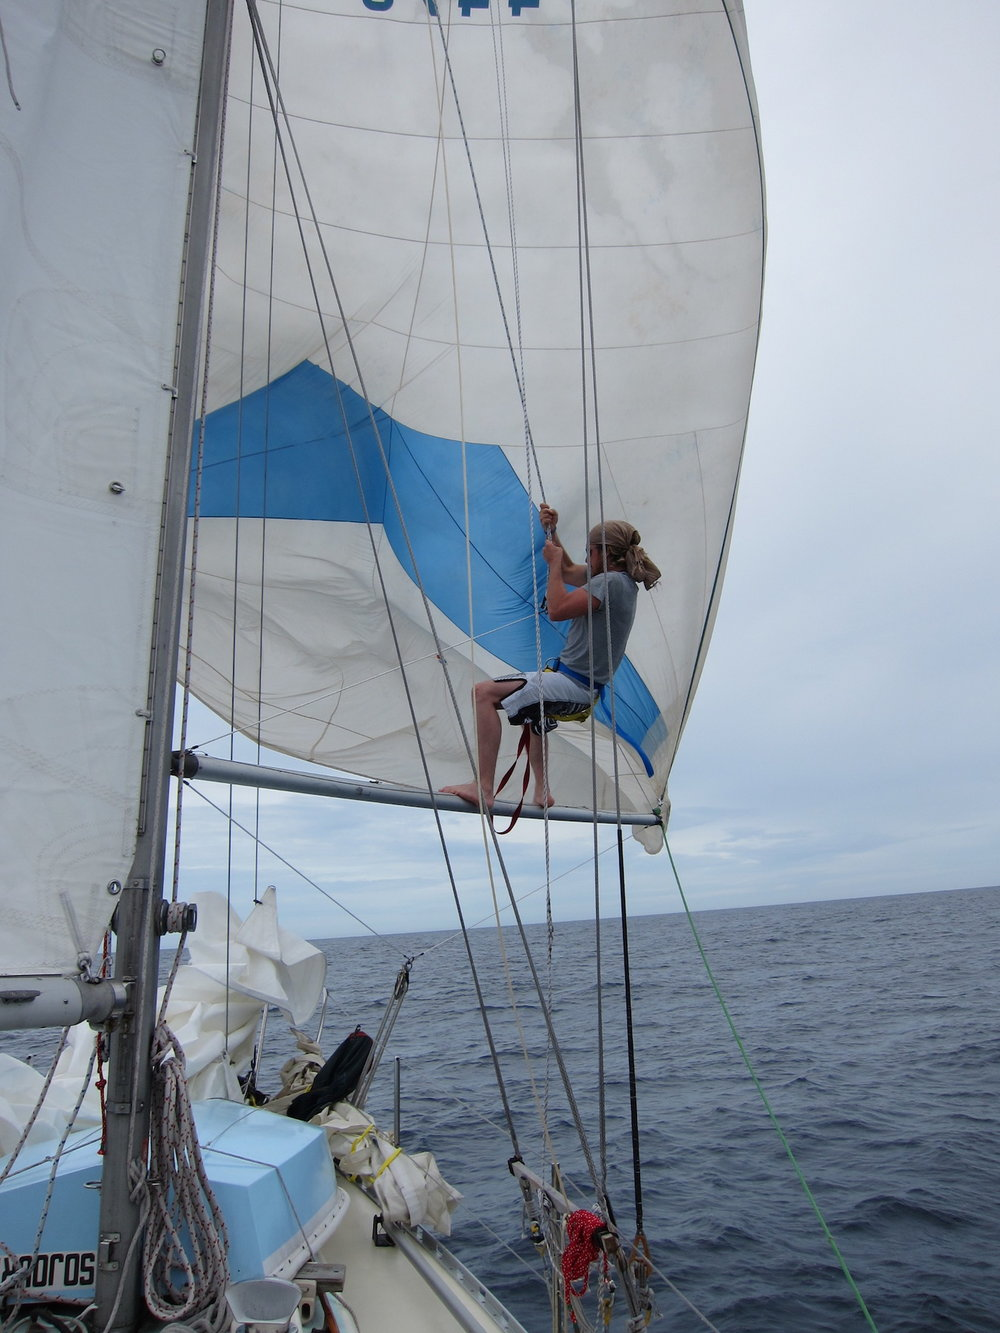 Spinnaker sailing in the middle of the Atlantic